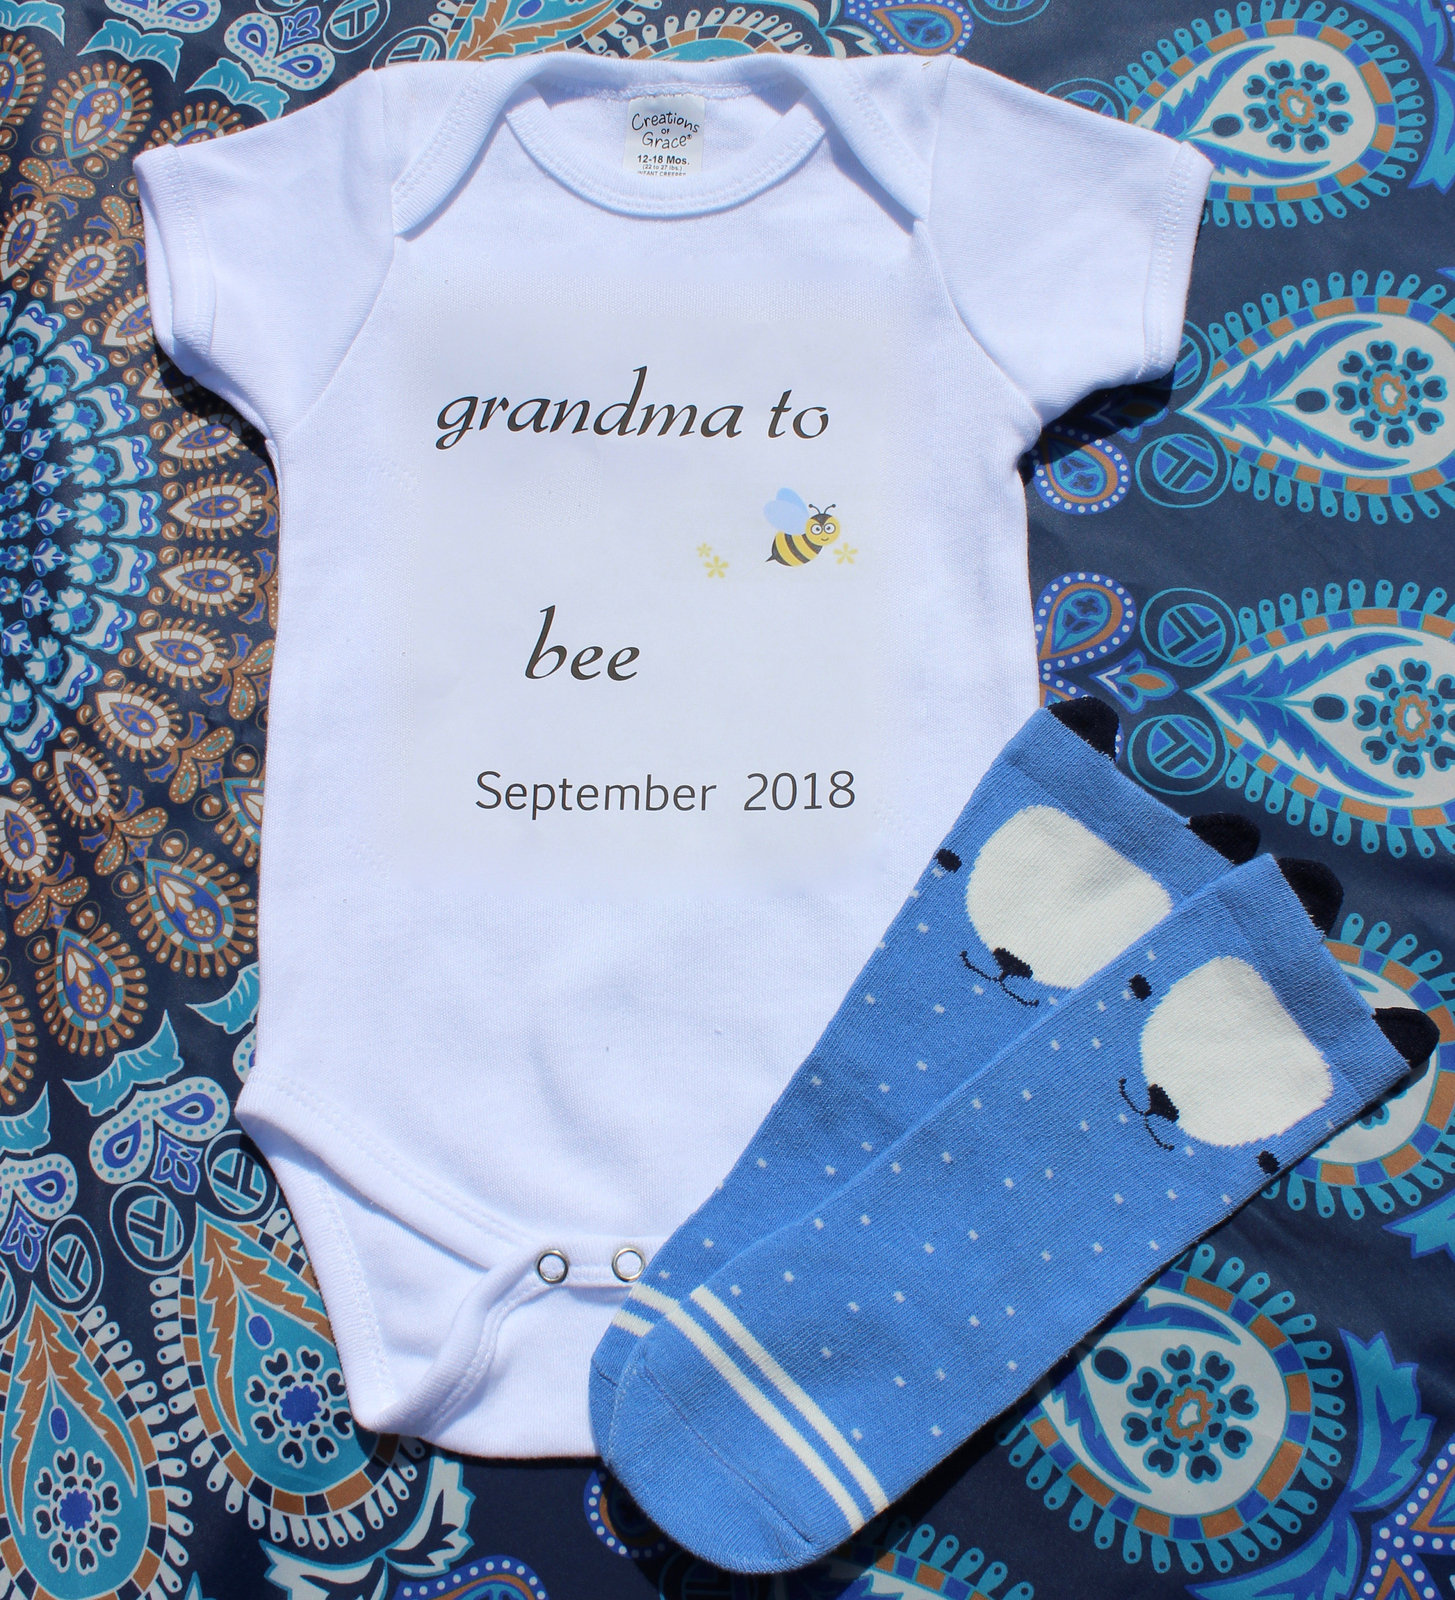 e3870790e Pregnancy Announcement Grandma to bee baby and 50 similar items. Il  fullxfull.1507010264 1z43